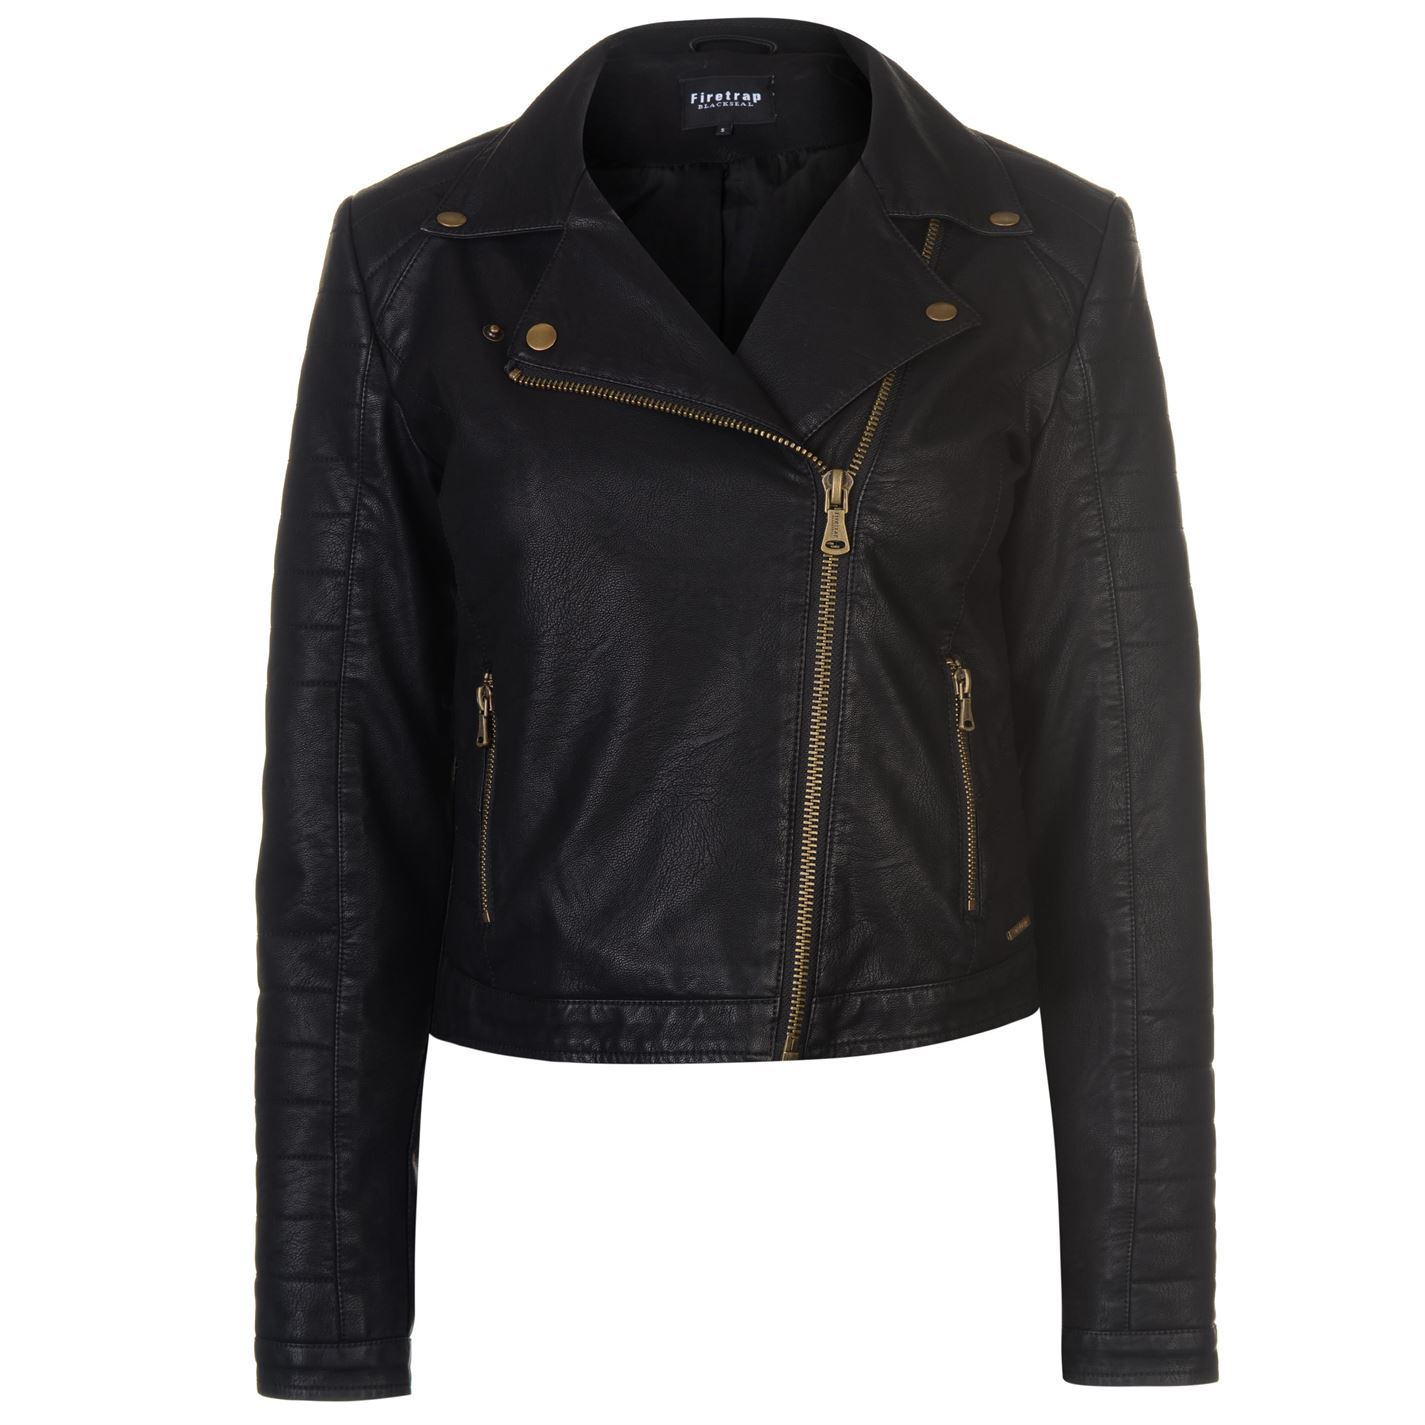 Kate Biker Jacket Blackseal Black gold Coats Firetrap Womens Outerwear 1xOgqS